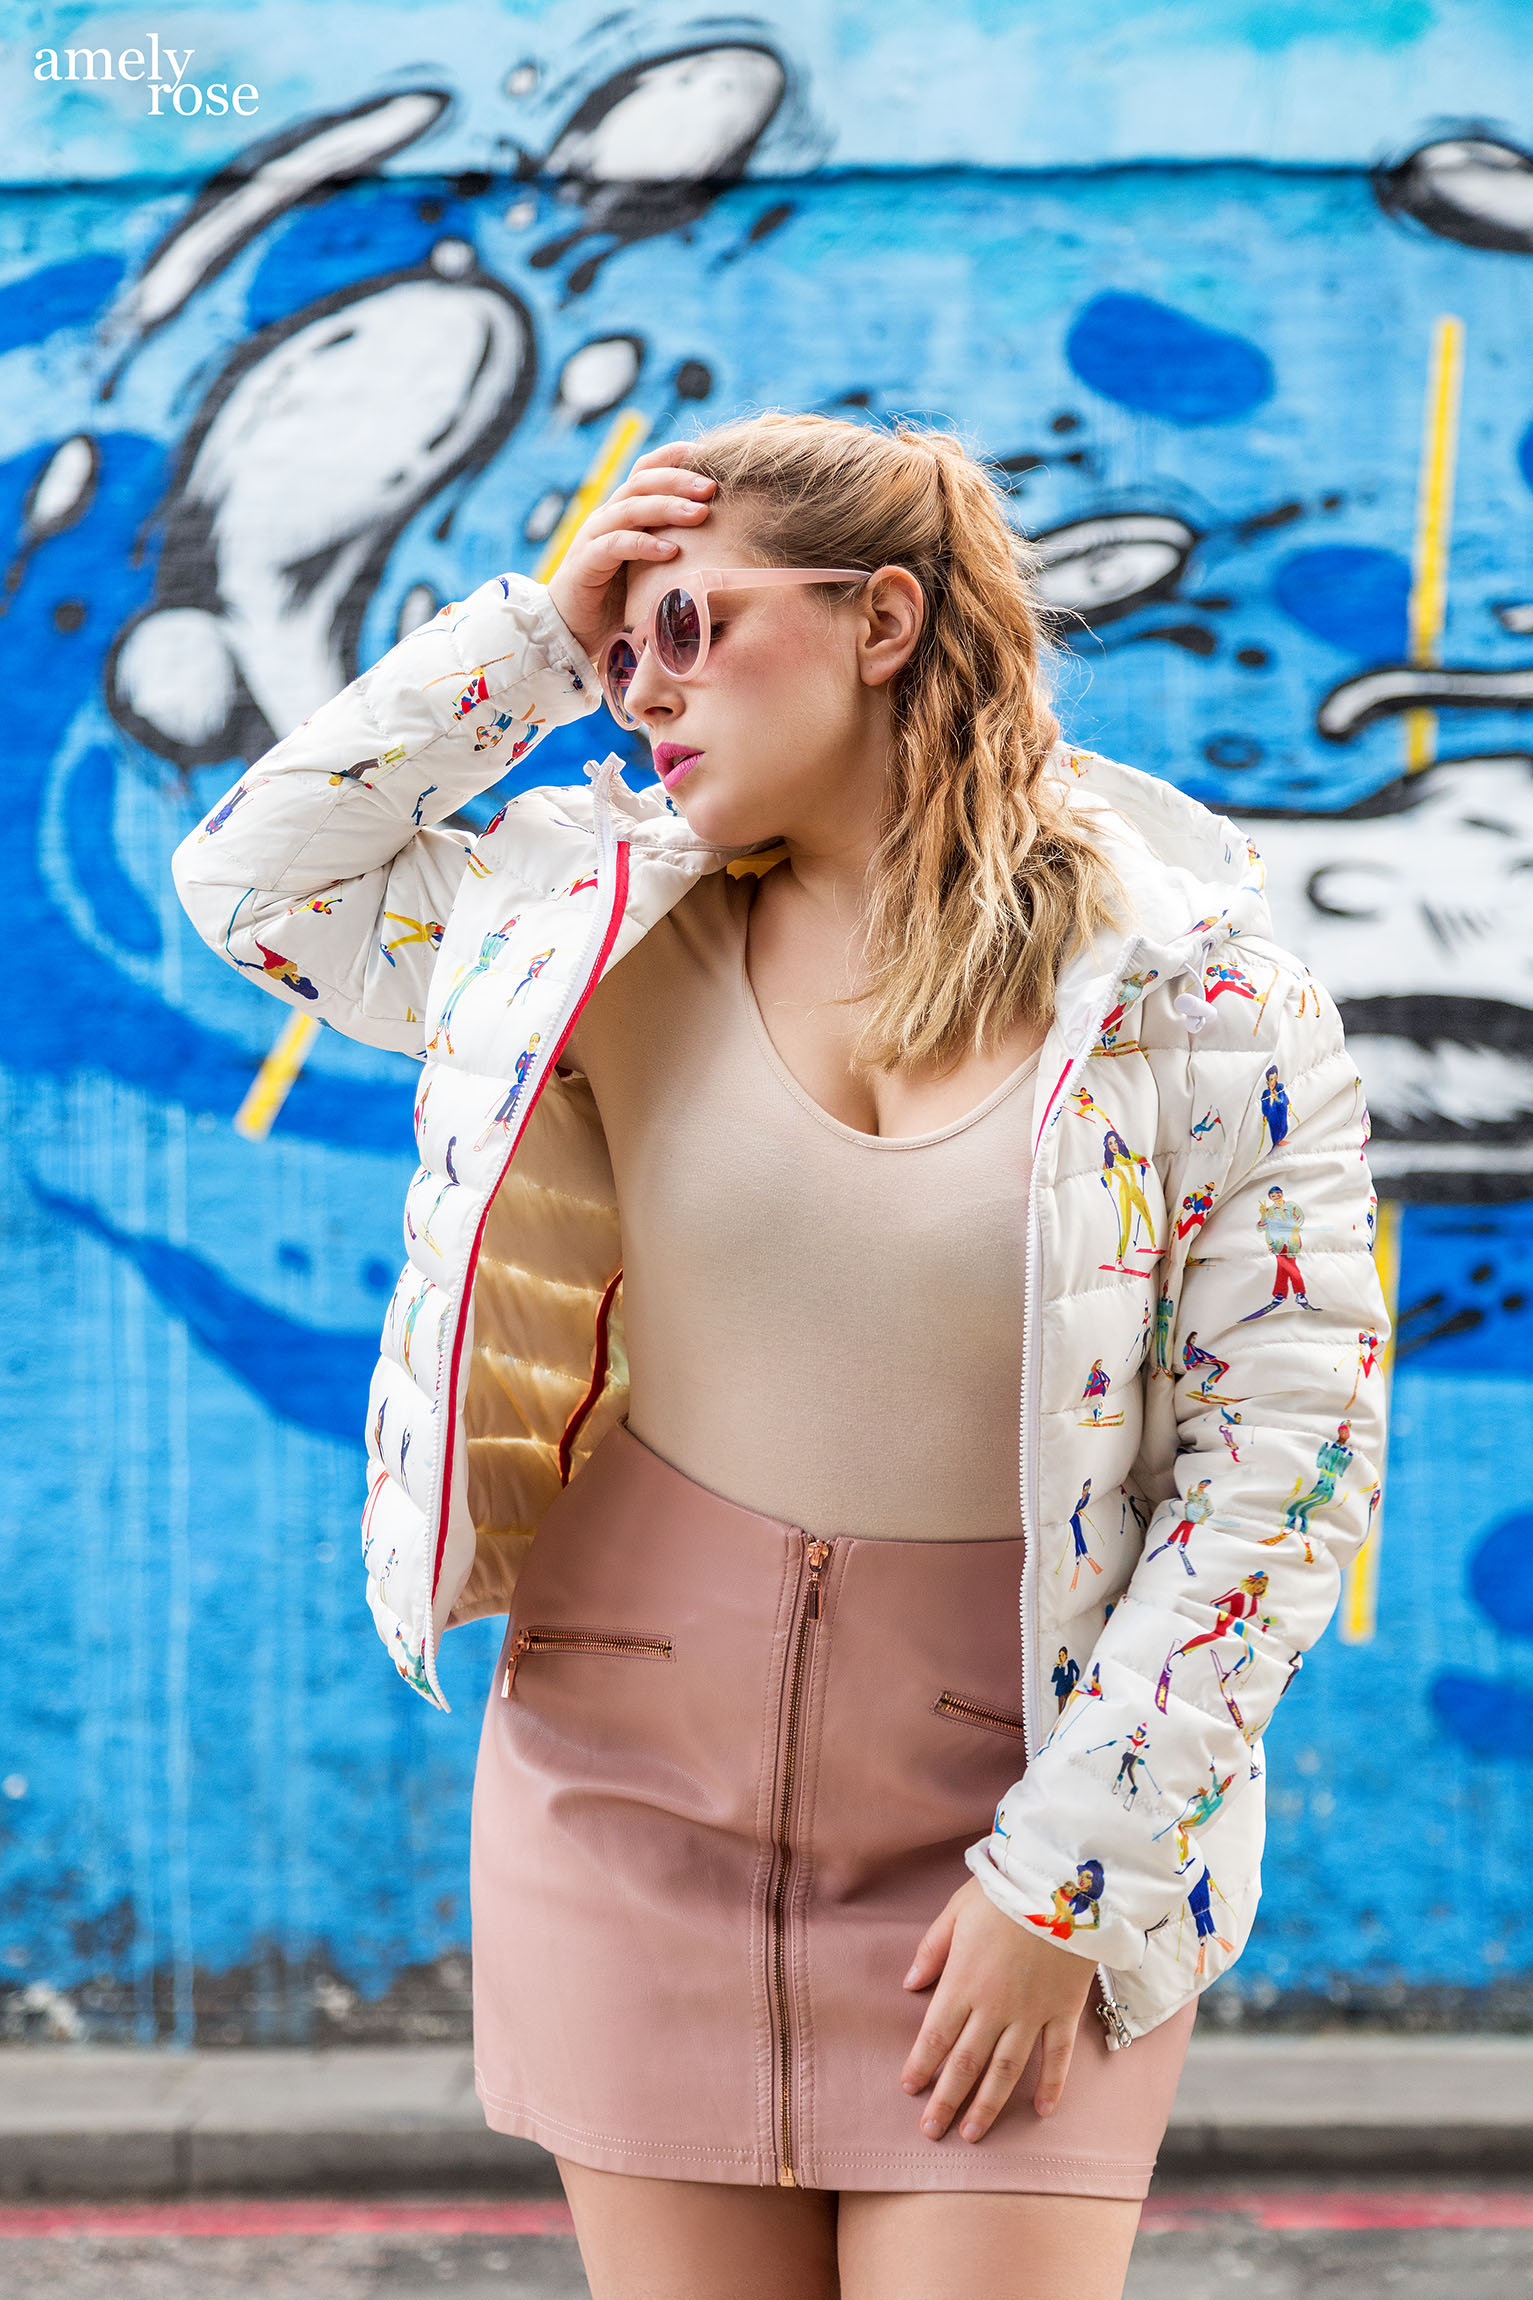 Amely Rose in einer Designer Winterjacke vor einem blauen Graffiti in London.